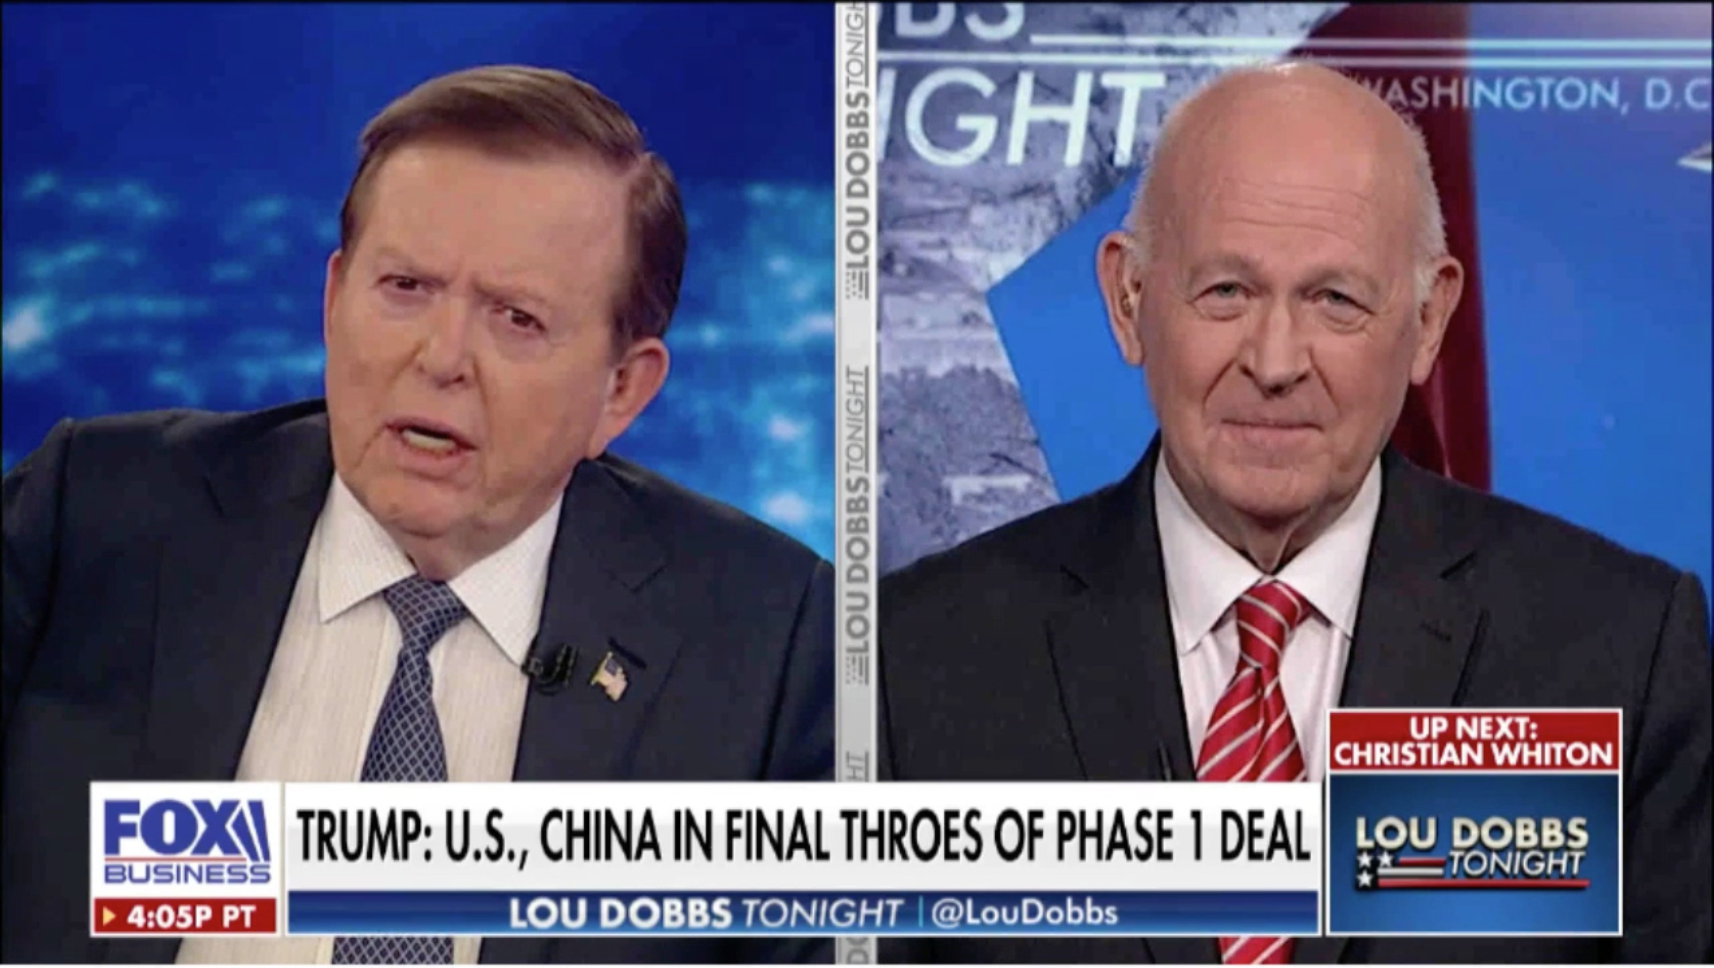 Michael Pillsbury discusses a possible U.S.-China deal before 2020